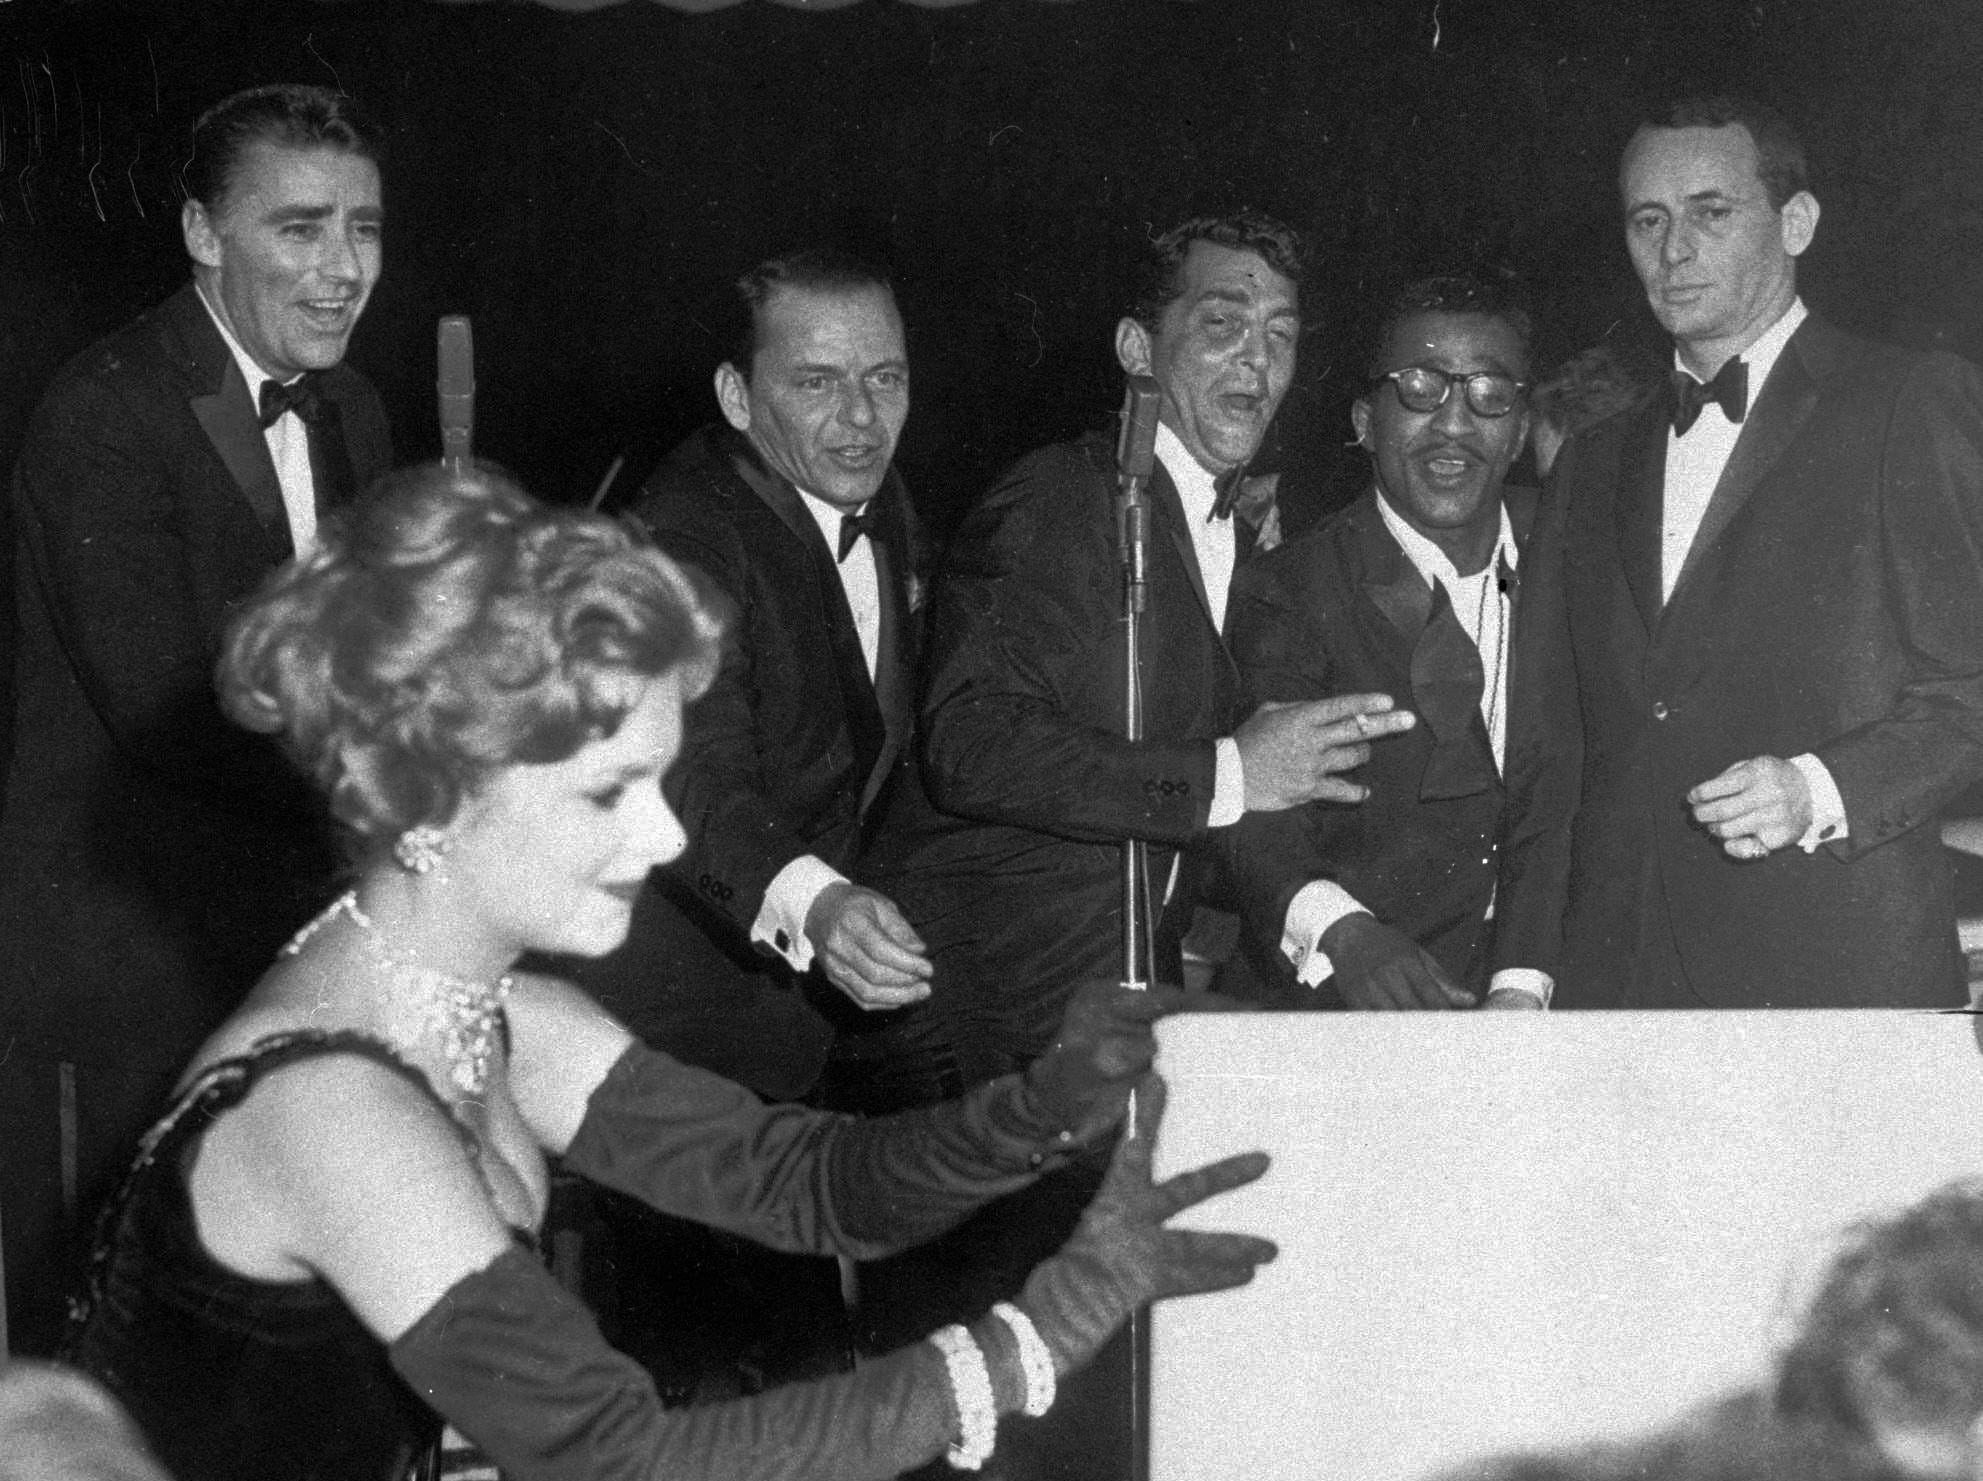 """Rat Pack: Frank Sinatra, Dean Martin, Sammy Davis Jr. recorded the album """"Rat Pack: Live At the Sands"""" at the Sands Casino but the musicians were known to show up and perform at each others shows in the Sands' Copa Room."""